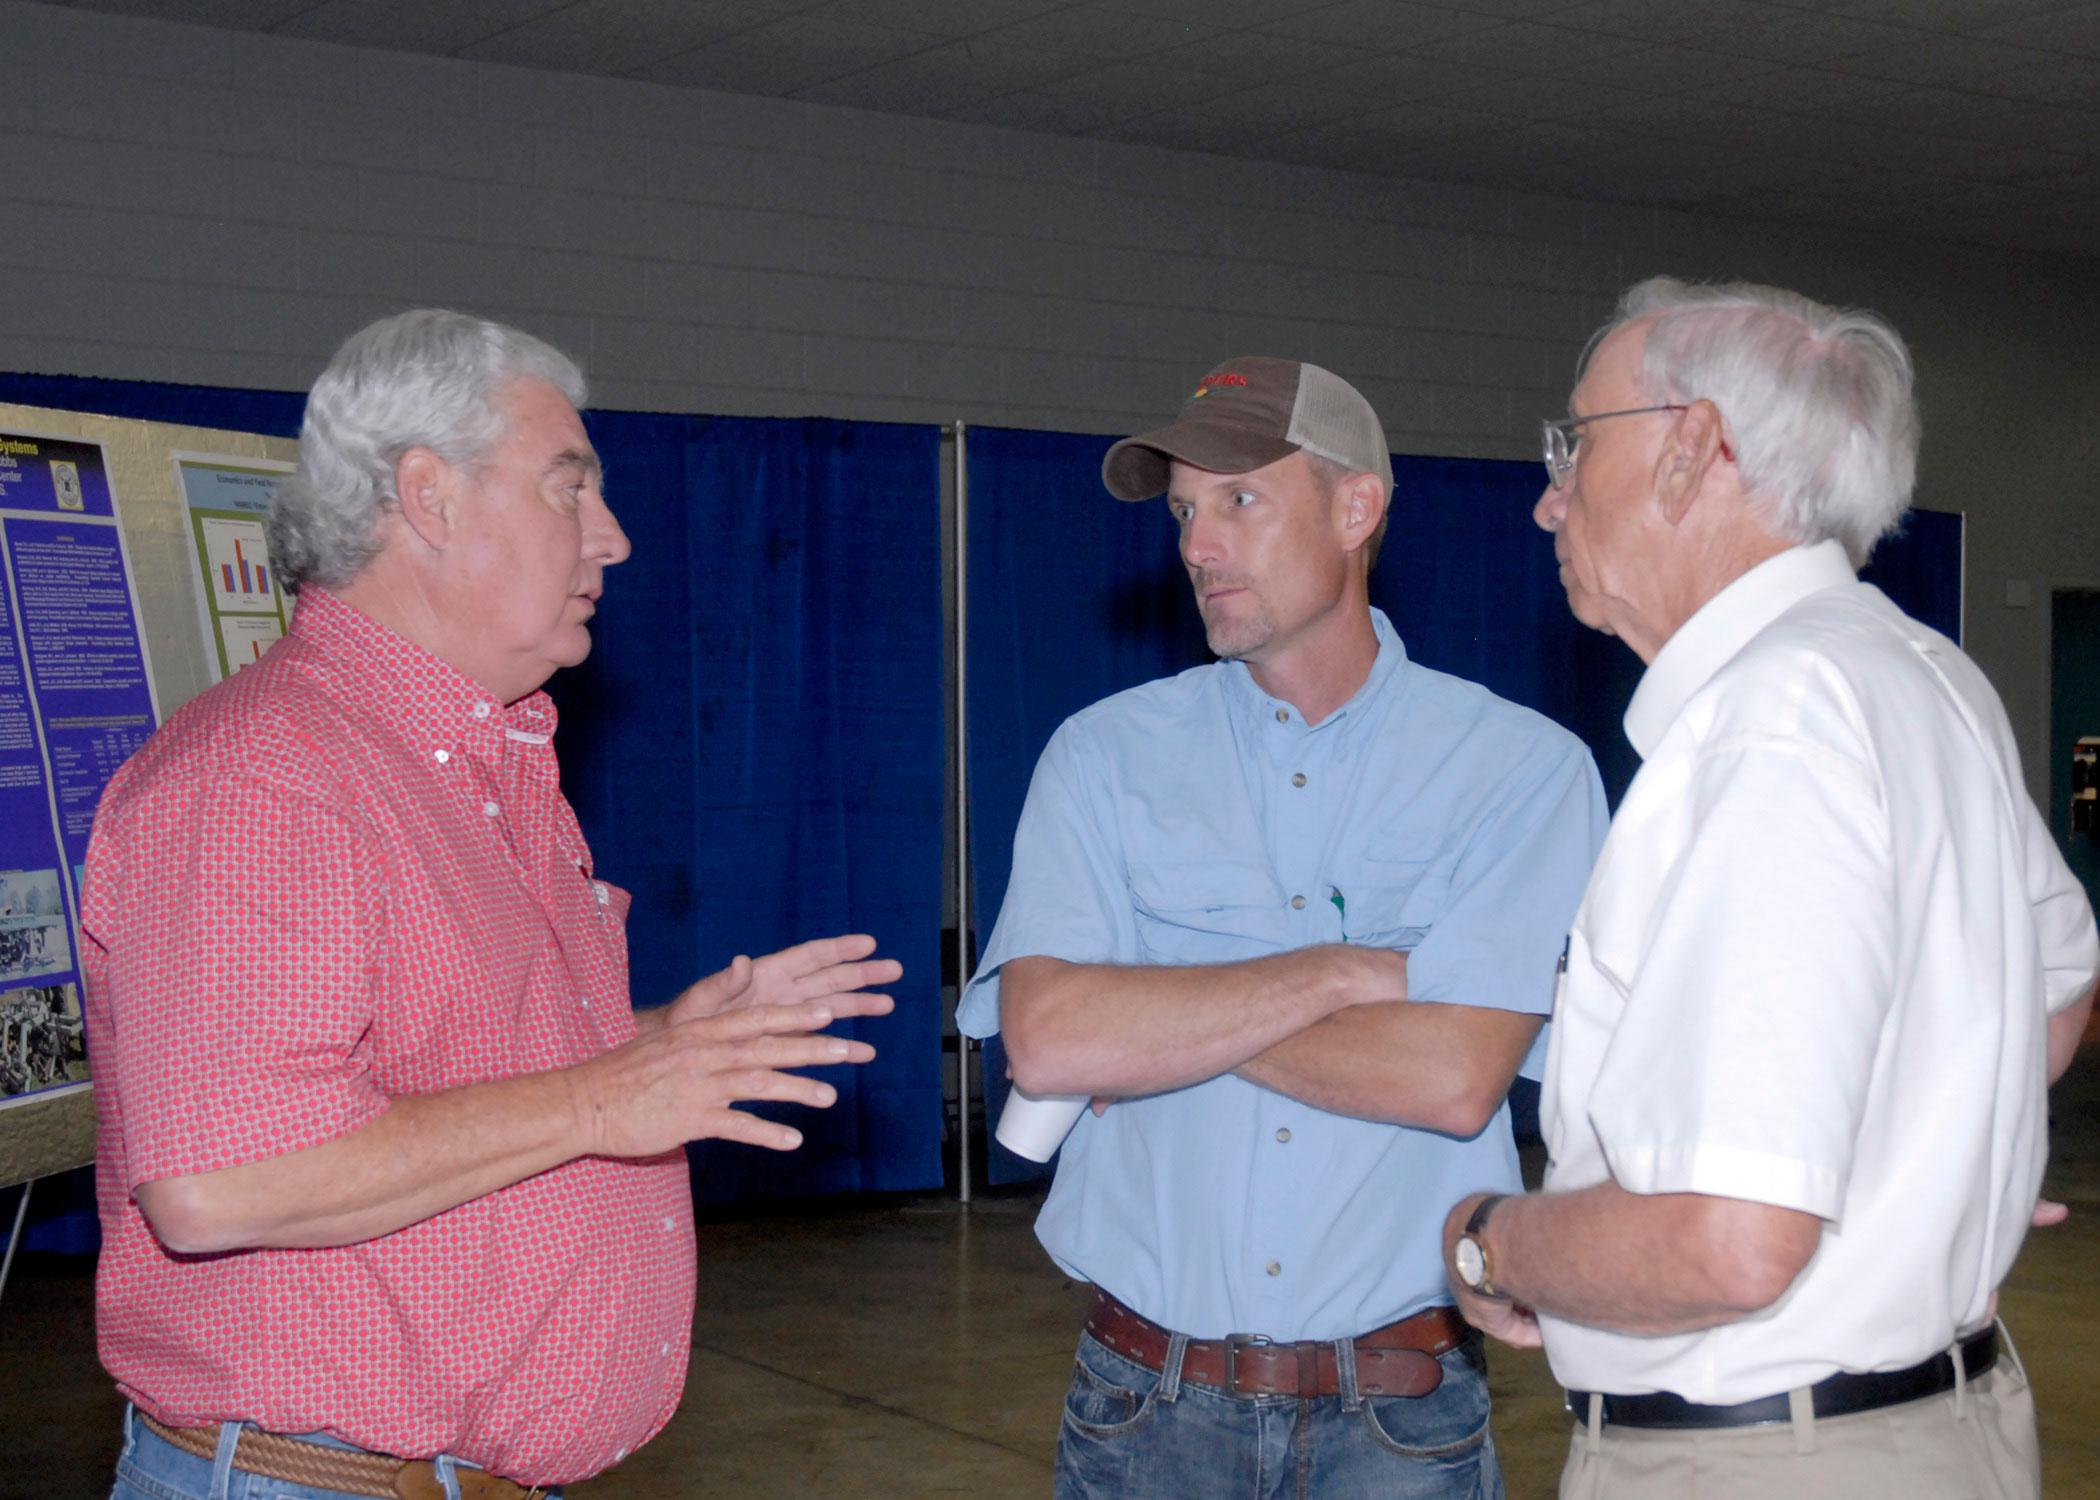 From left, Roger Worsham, a tillage equipment vendor, reviews tillage options with Glenn Gilmer, a farmer from Caledonia, and Normie Buehring, a research professor with the Mississippi Agricultural and Forestry Experiment Station. The three were taking part in the North Mississippi Row Crops Field Day Aug. 9, 2012, at the North Mississippi Research and Extension Center in Verona. (Photo by MSU Ag Communications/Linda Breazeale)